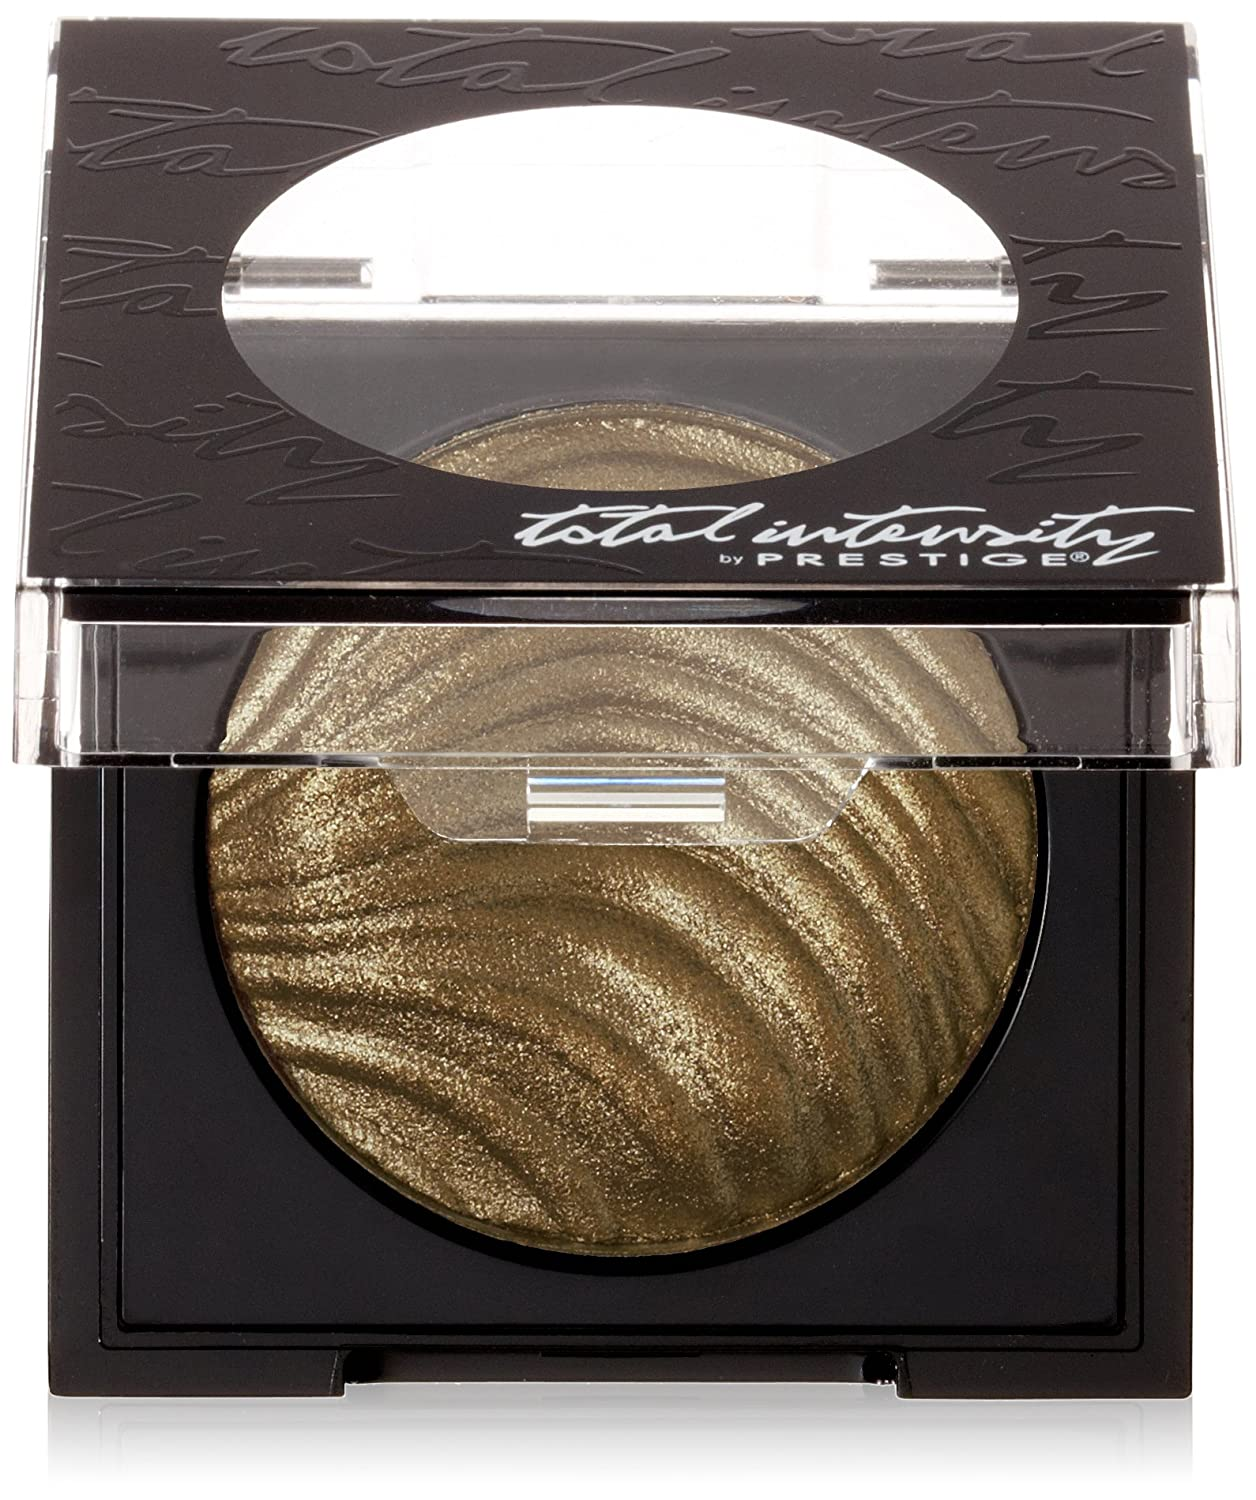 Prestige Cosmetics Total Intensity Color Rush Shadow Makeup Ur Mind, 1 Count TIC-02